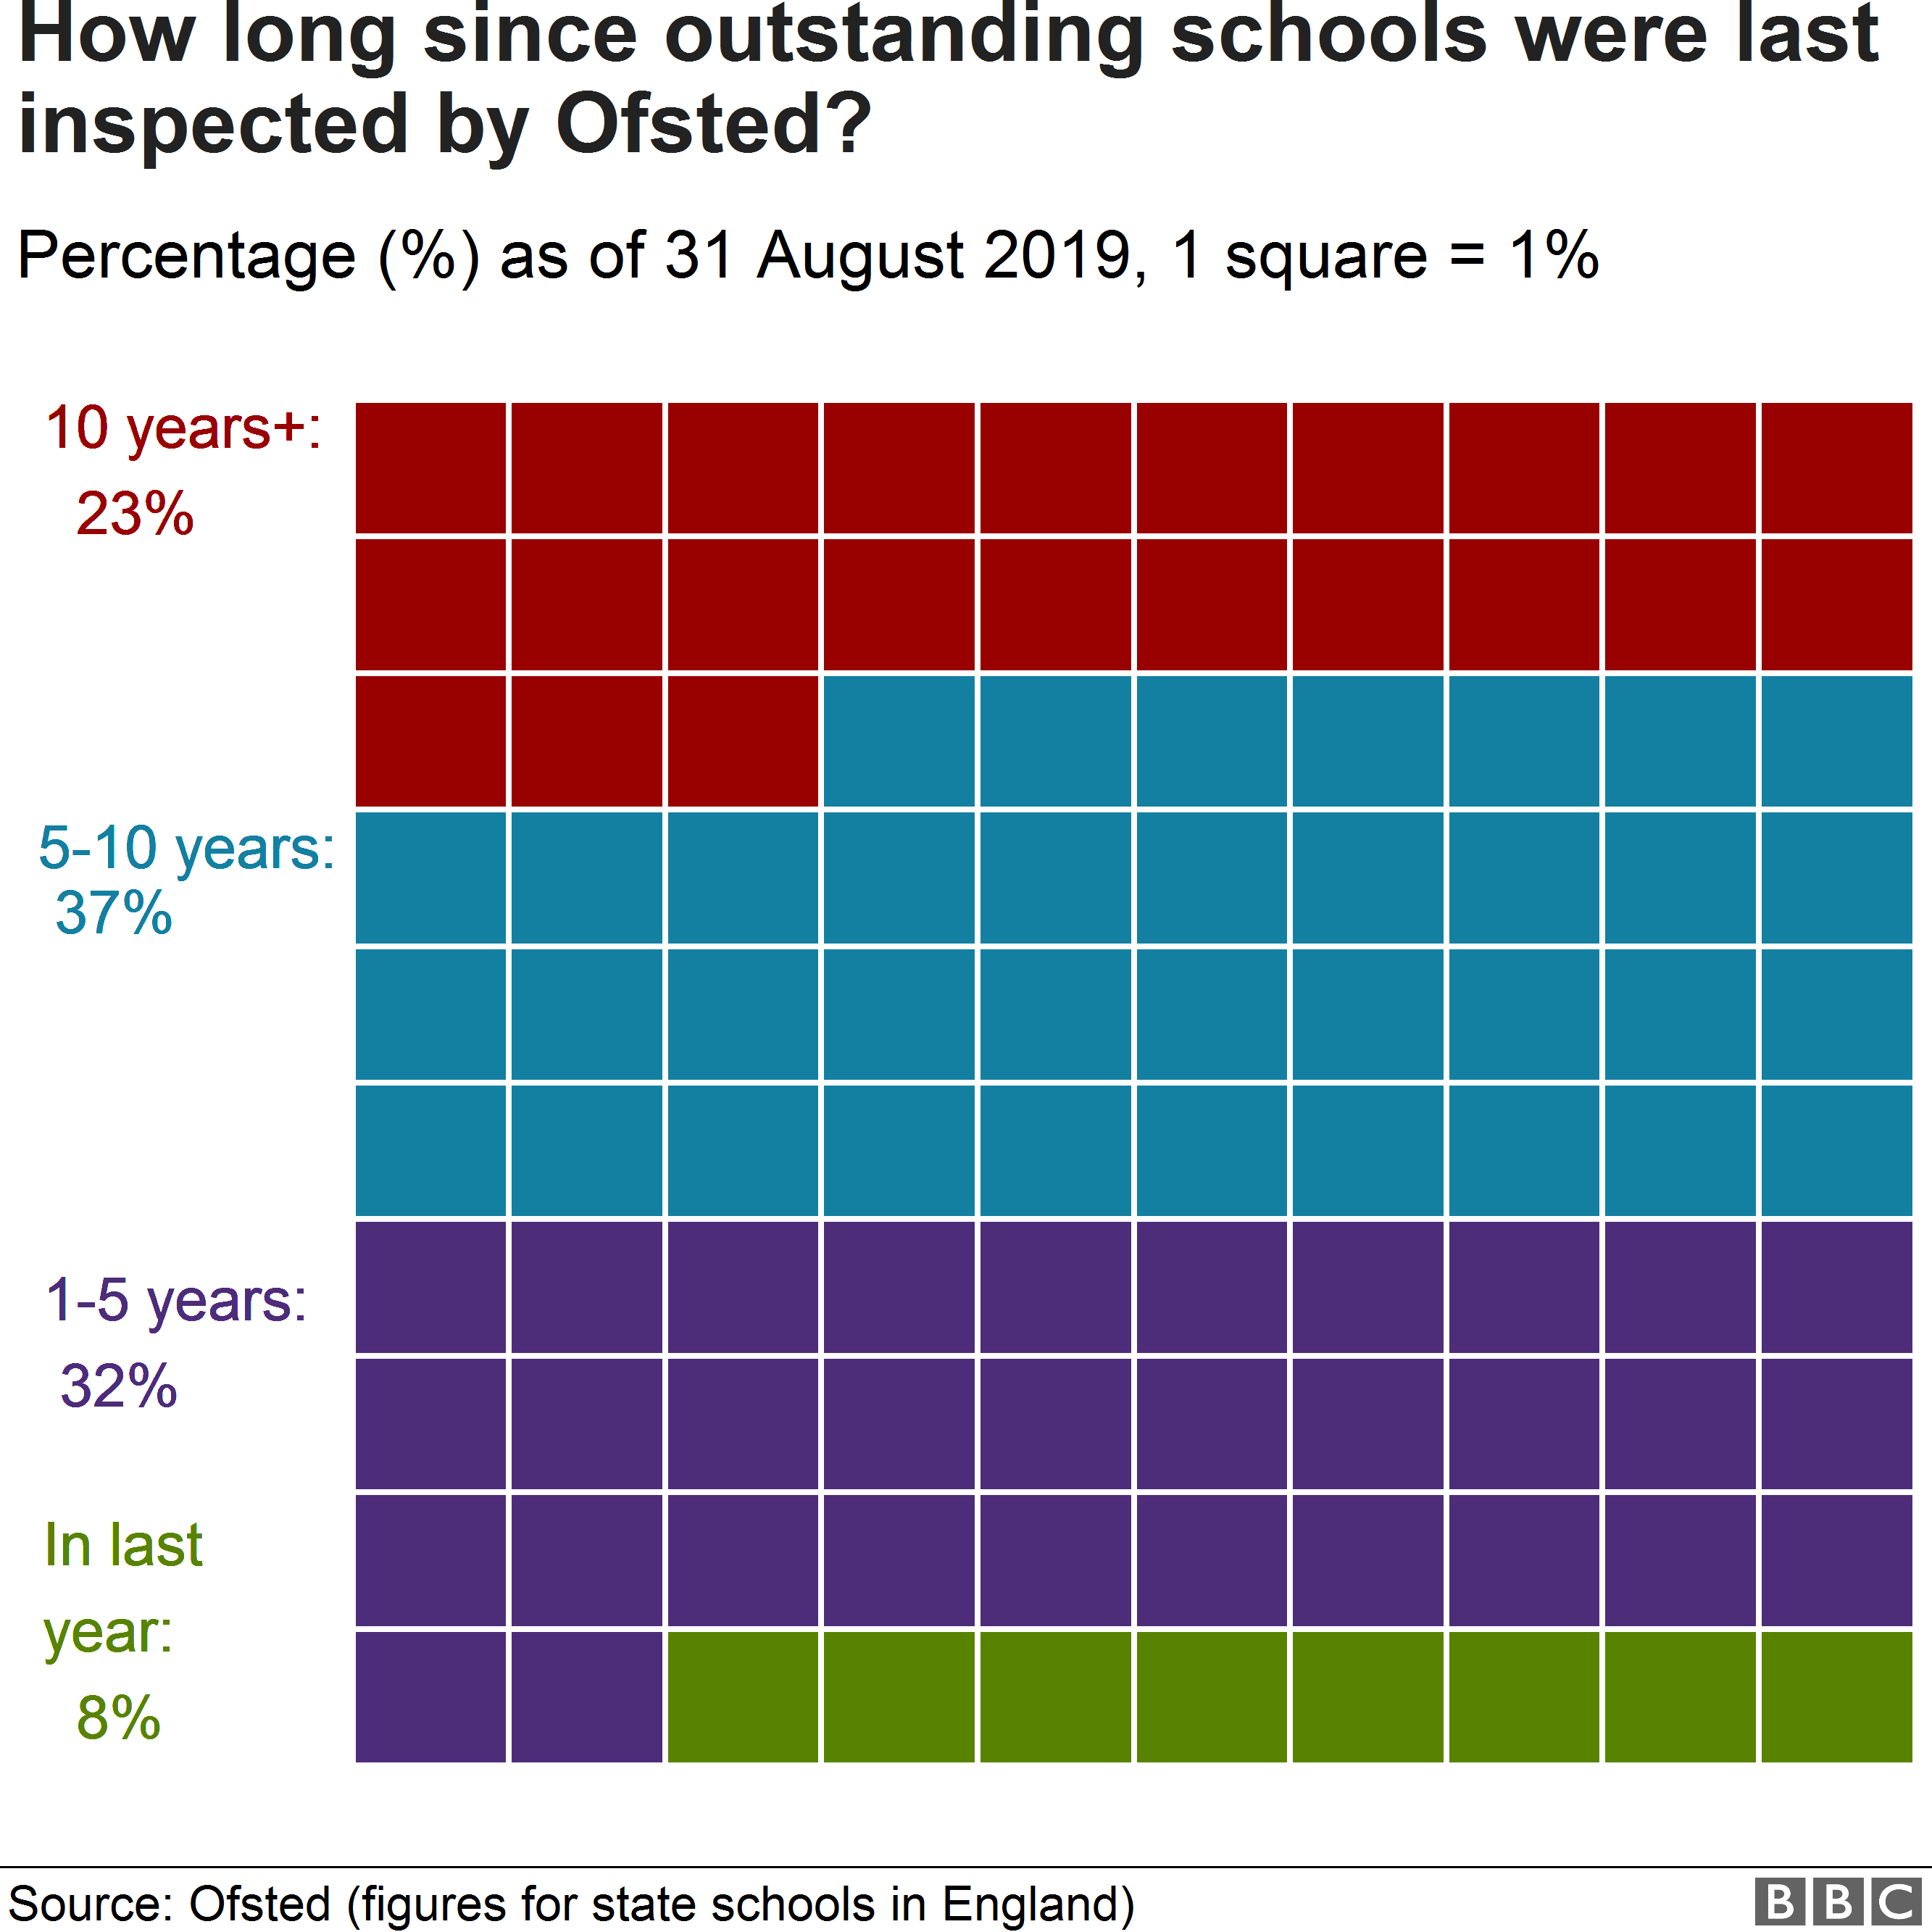 Chart showing how long since outstanding schools were last inspected by Ofsted